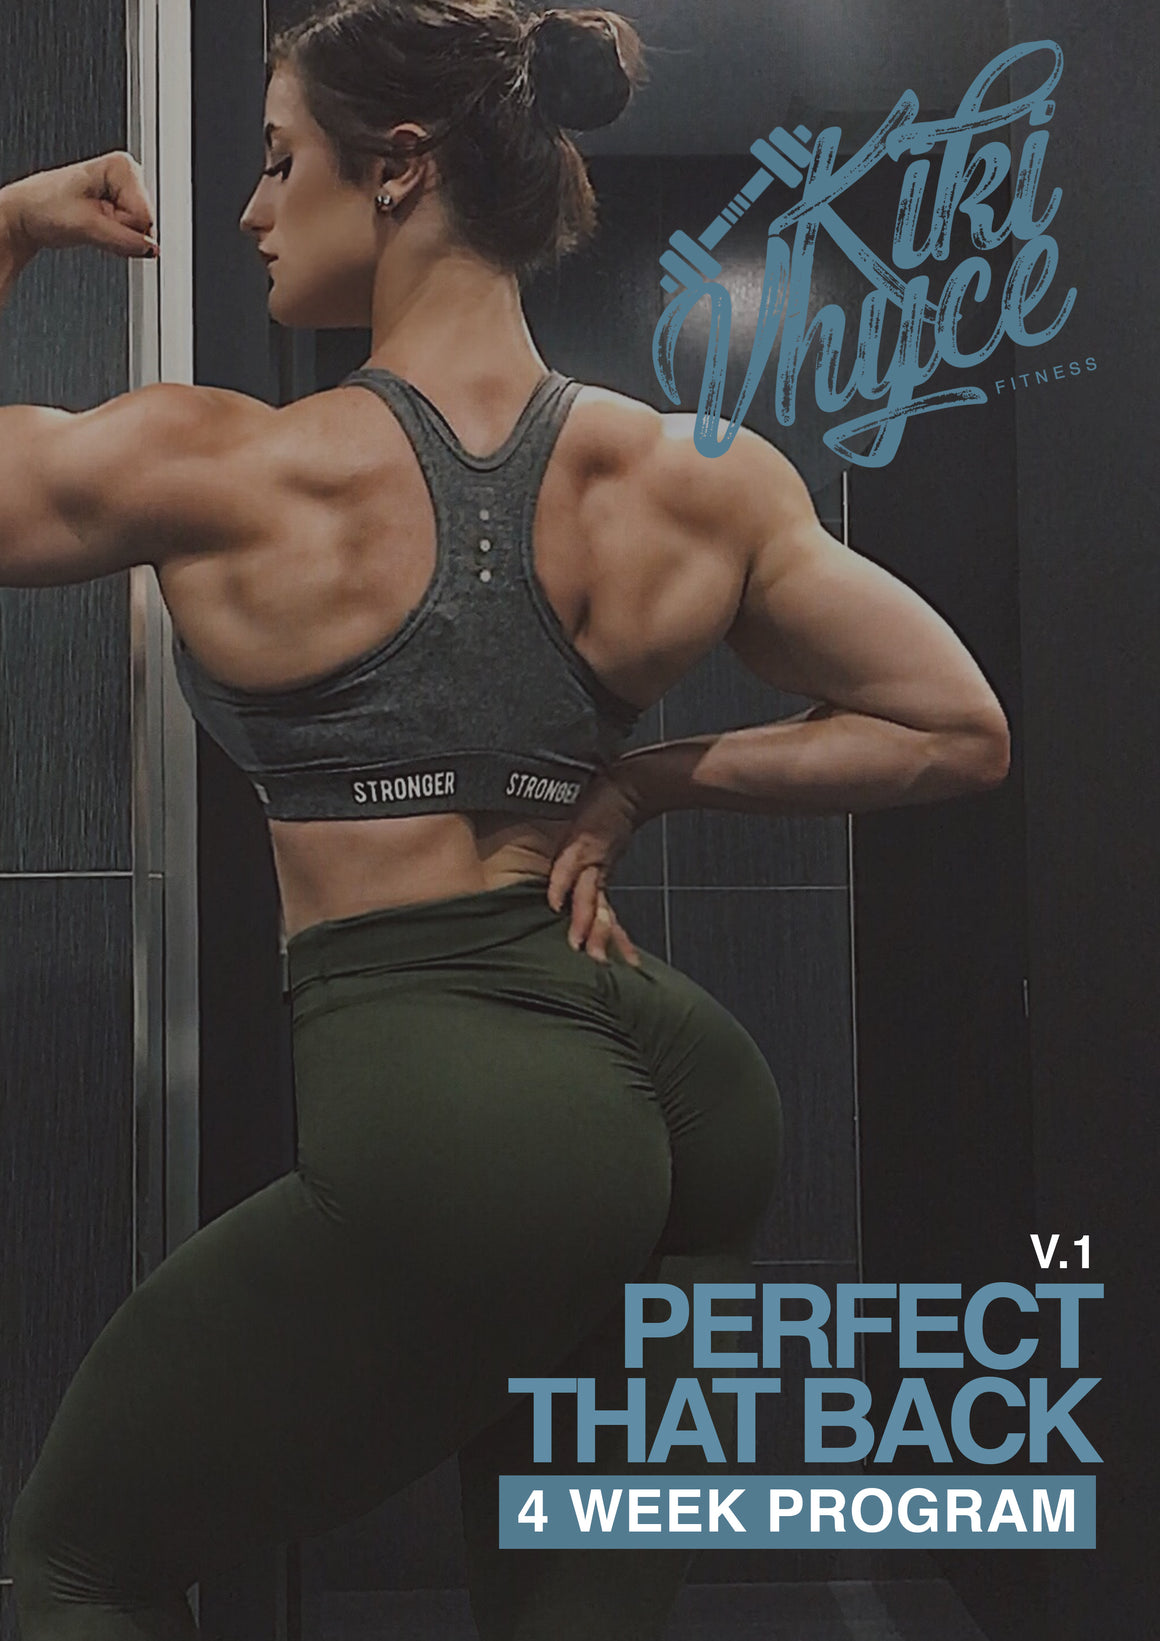 PERFECT THAT BACK PROGRAM